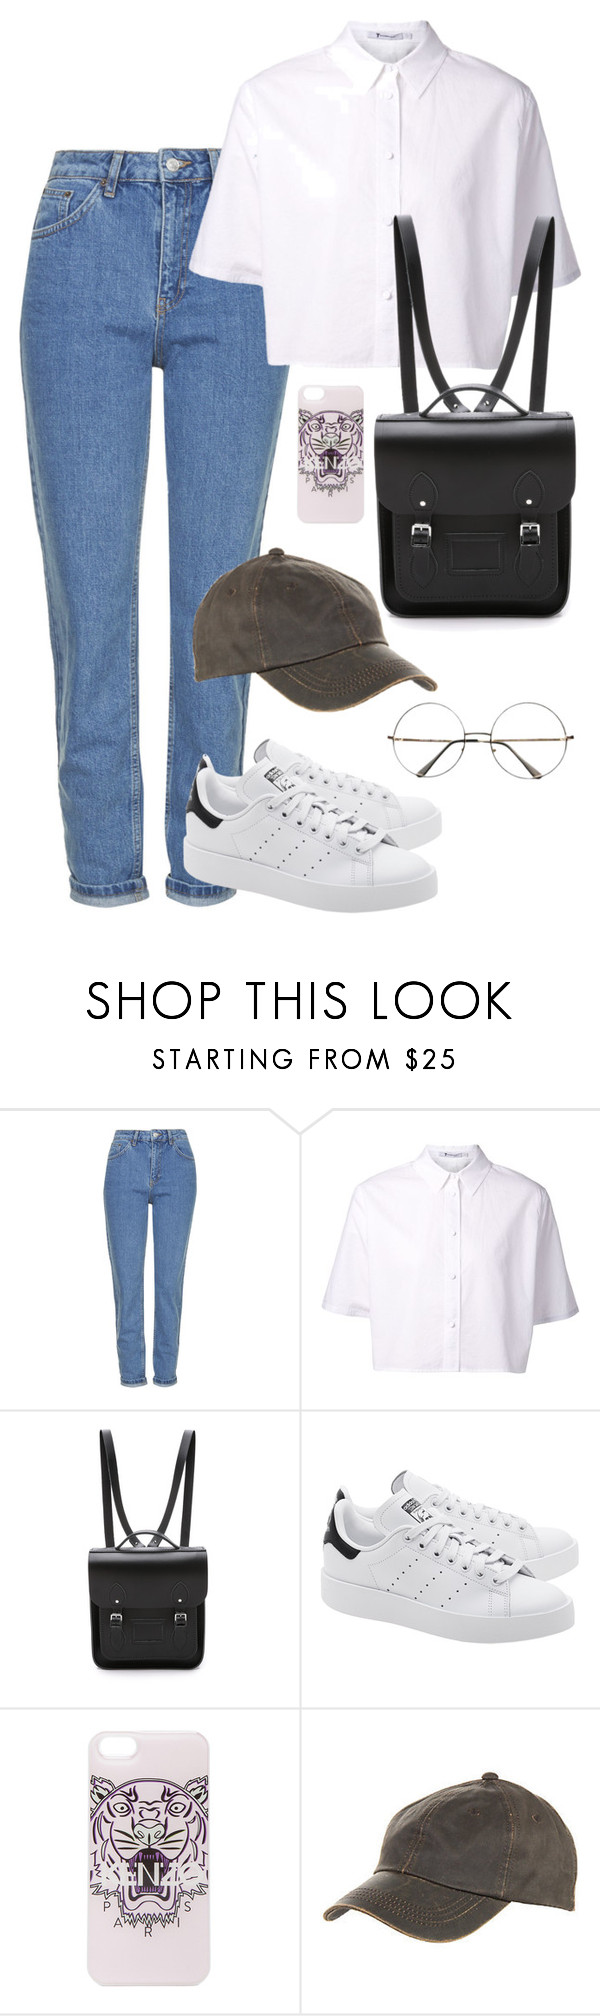 """BTS concert // Rap Monster"" by berrie95 on Polyvore featuring Topshop, T By Alexander Wang, The Cambridge Satchel Company, adidas Originals, Kenzo, Retrò, Overland Sheepskin Co., ConcertOutfit, bts and BangtanBoys"